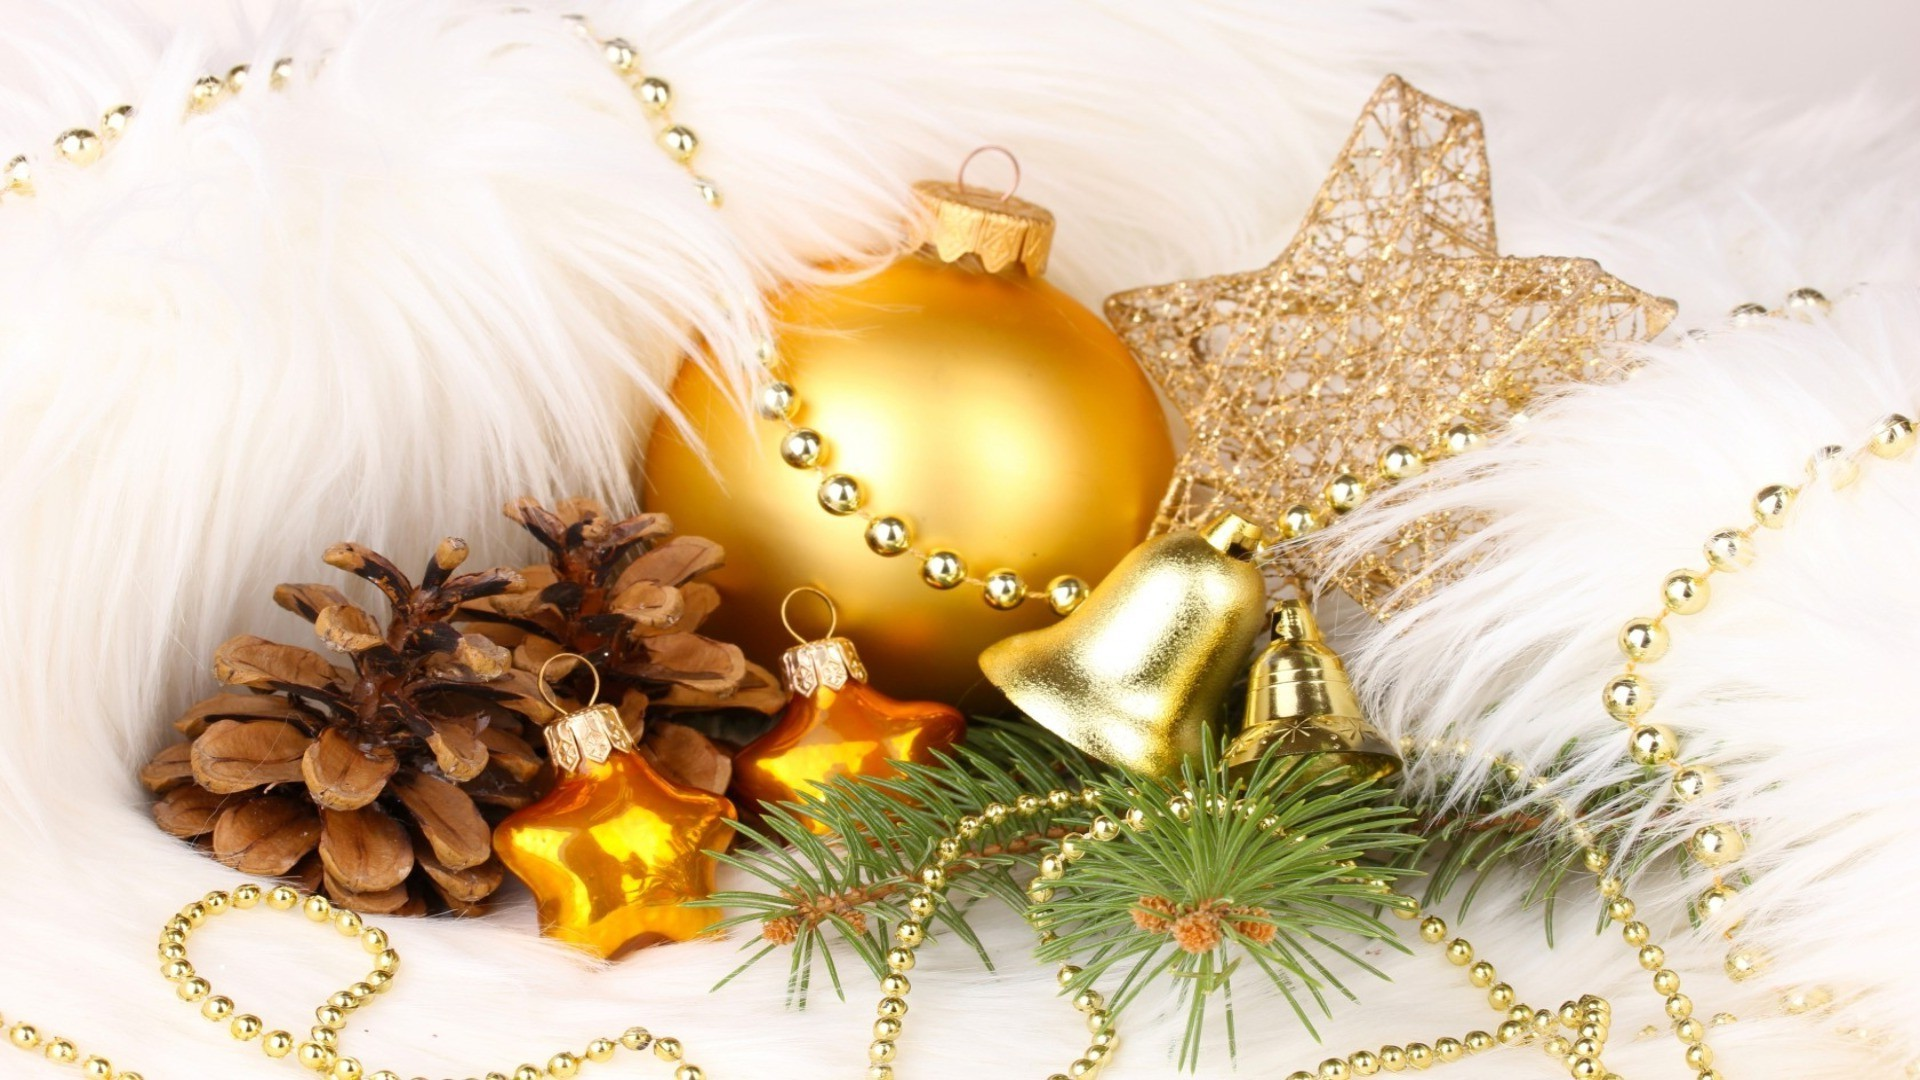 new year christmas decoration celebration winter gold thread traditional shining beads ball desktop gift merry glisten luxury season ornate